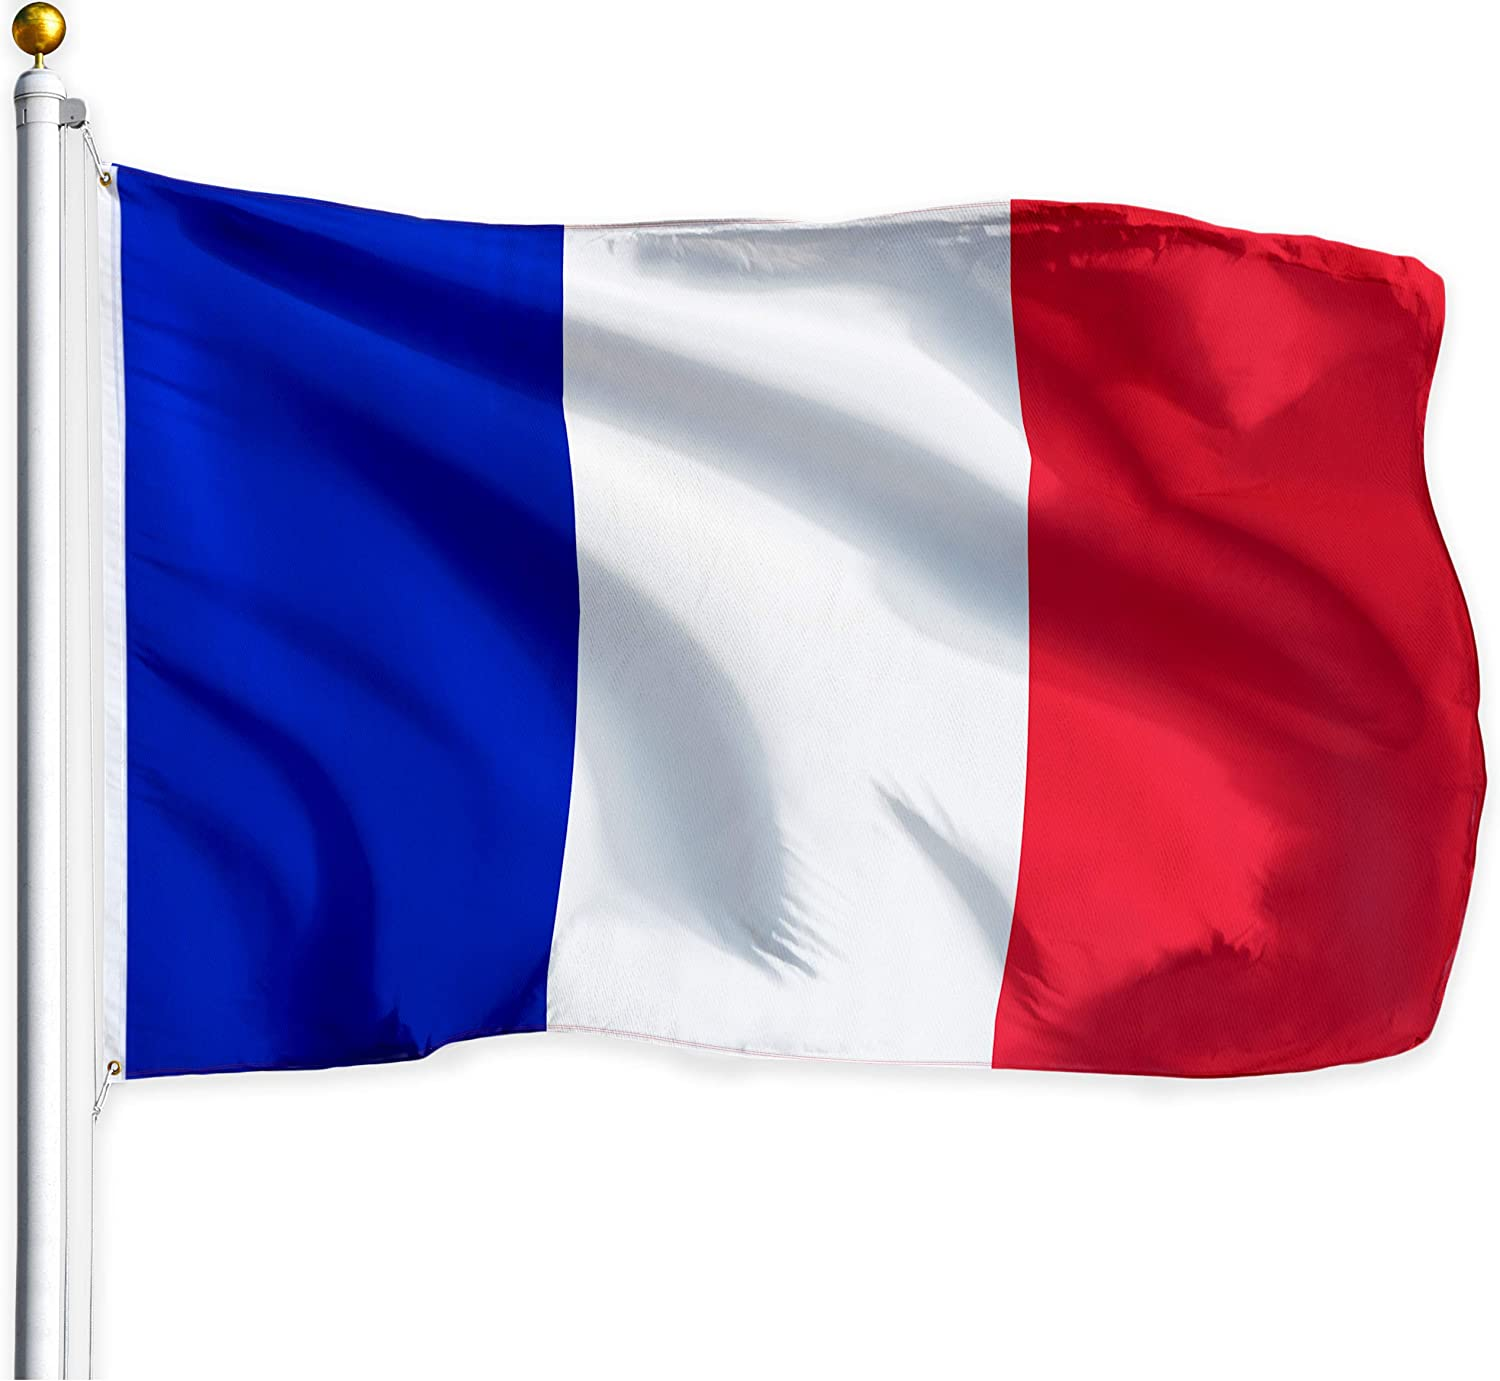 G128 - France Flag French Flag French National Flag France French Country Flag 3x5ft Printed Quality Polyester Brass Grommets Double Stitched Indoor/Outdoor